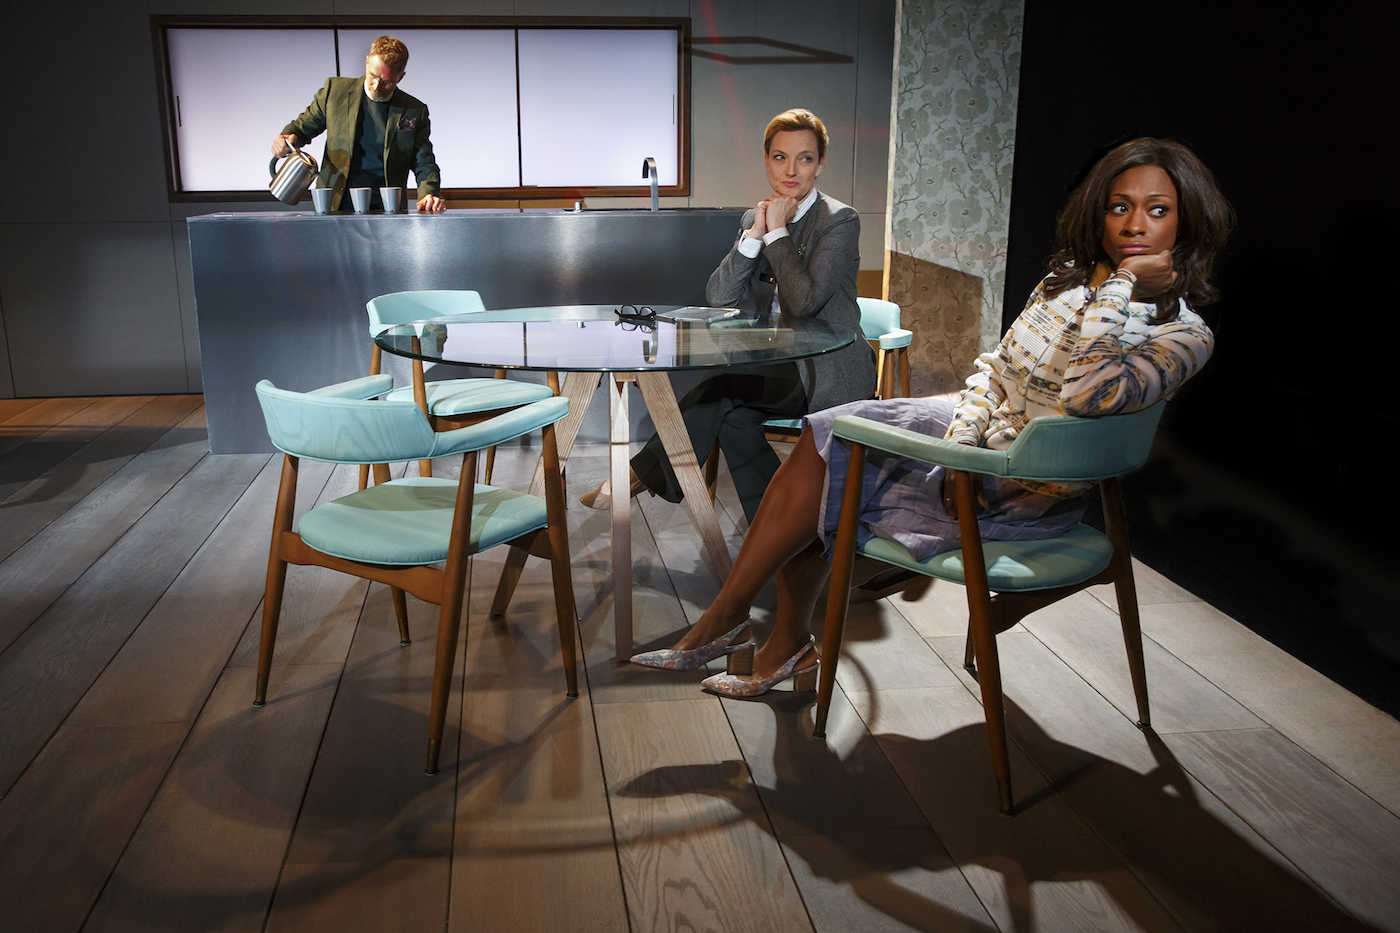 Left to right: Tim Daly, Orlagh Cassidy, and Rachael Holmes in Manhattan Theatre Club's 'The Ruins of Civilization' (photo © Joan Marcus, 2016; courtesy Manhattan Theatre Club)